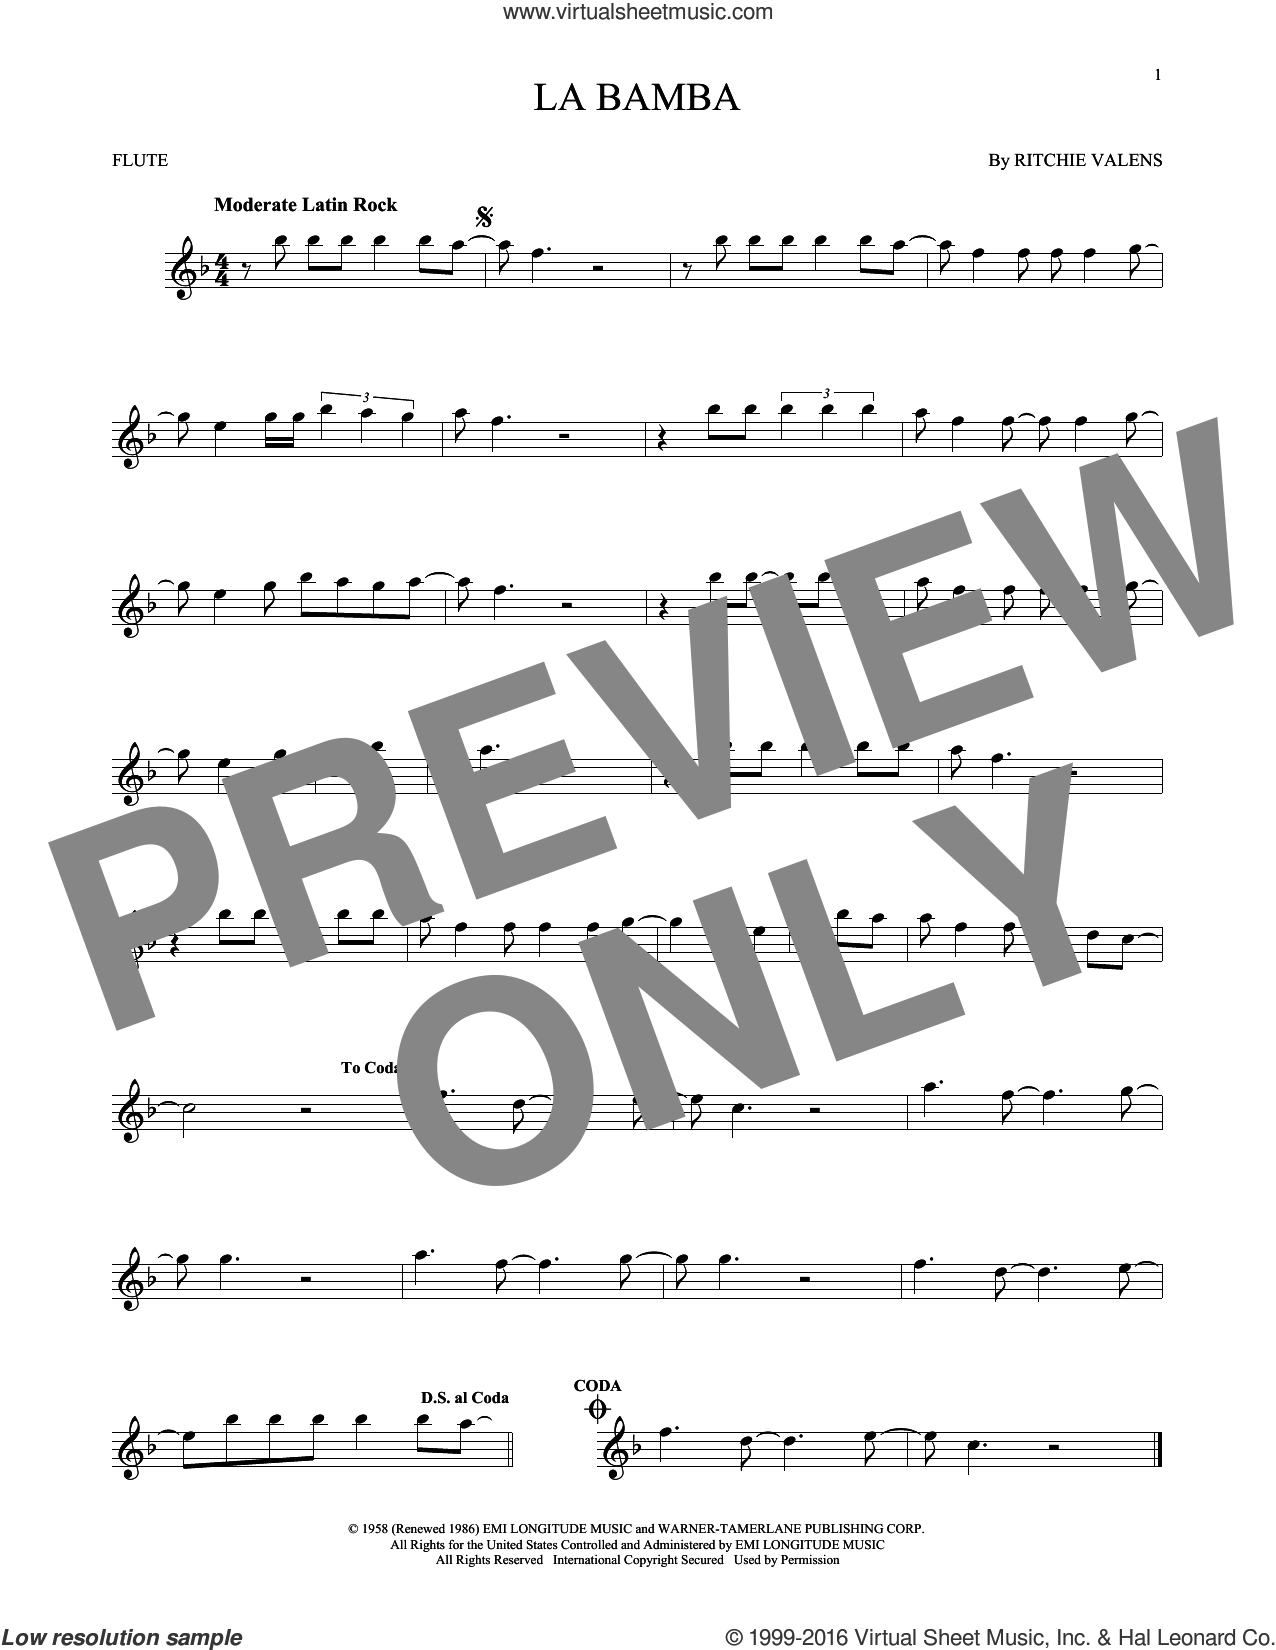 La Bamba sheet music for flute solo by Ritchie Valens and Los Lobos, intermediate